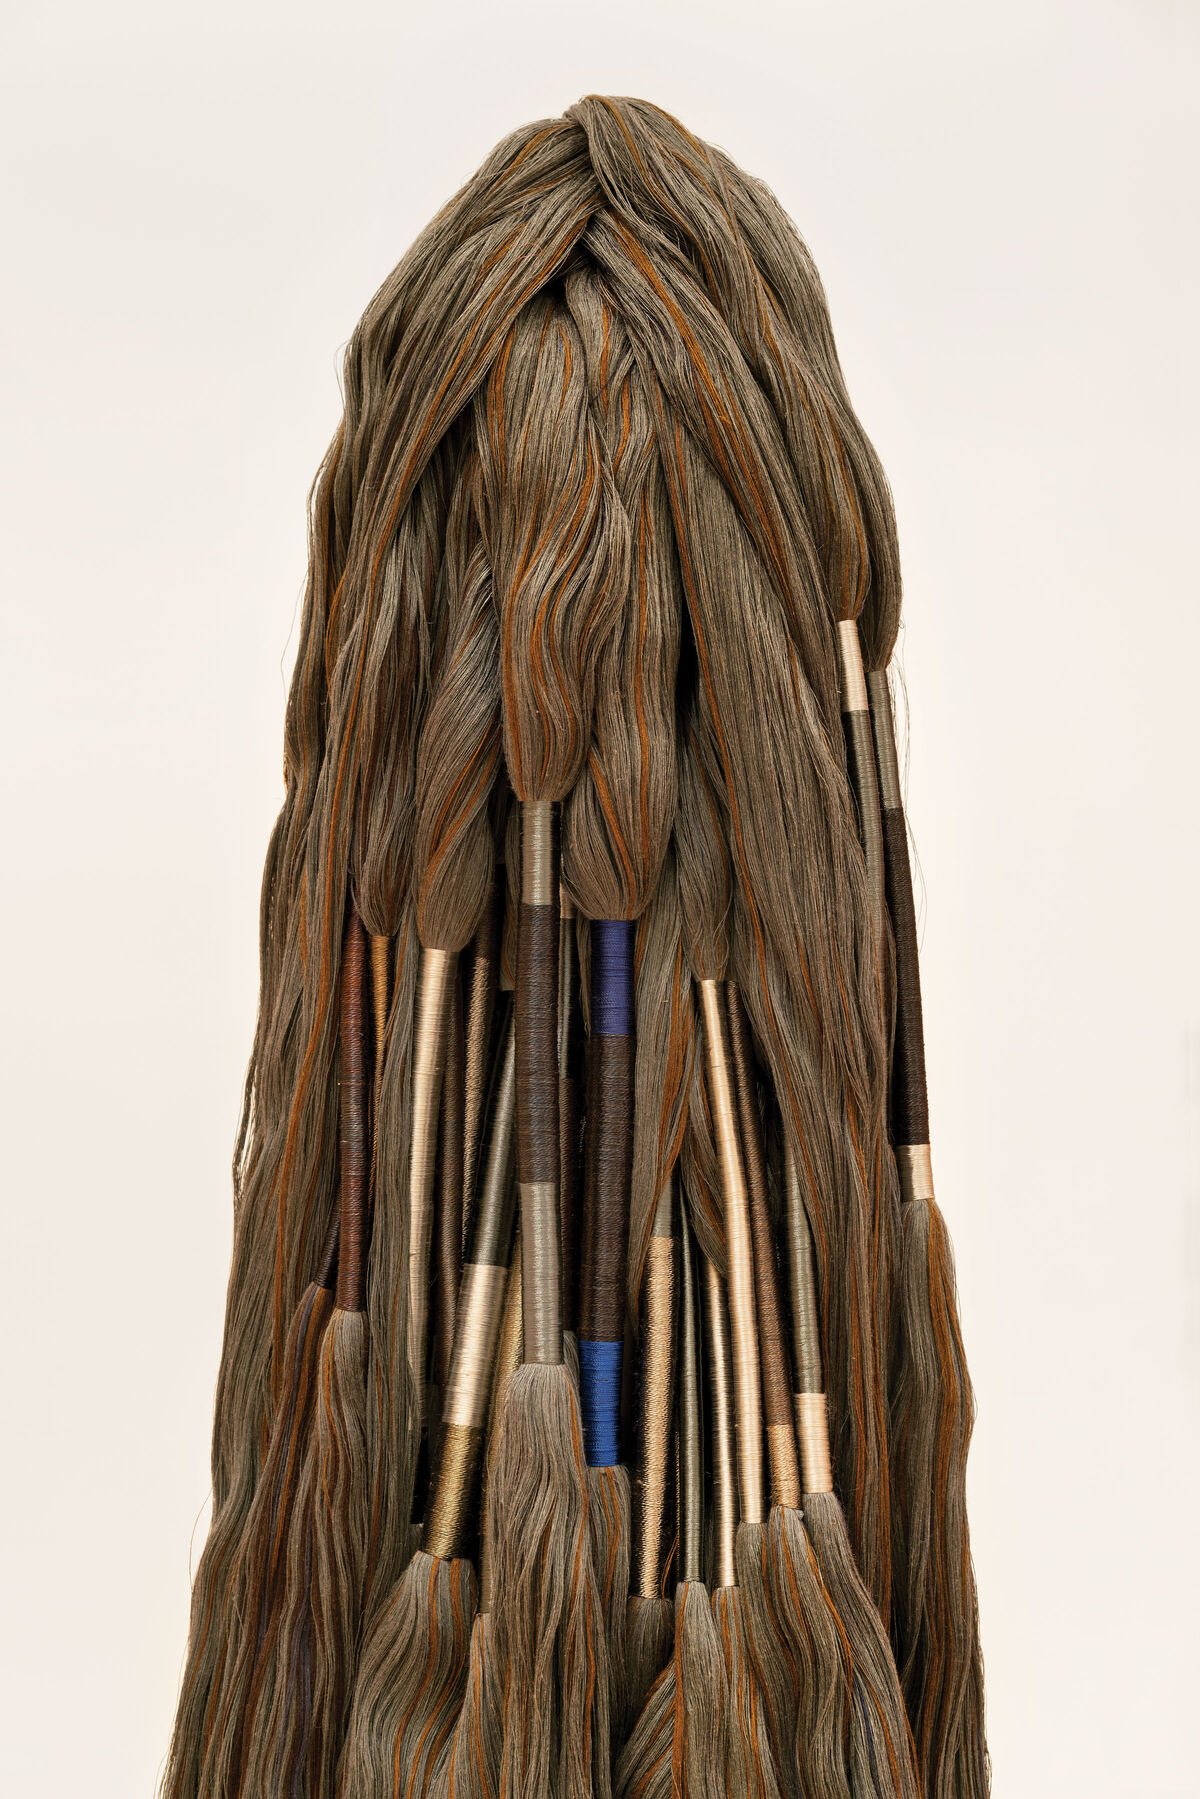 Sheila Hicks, Menhir, 1998–2004. Photo by Zachary Balber. Courtesy of The Bass, Miami Beach.